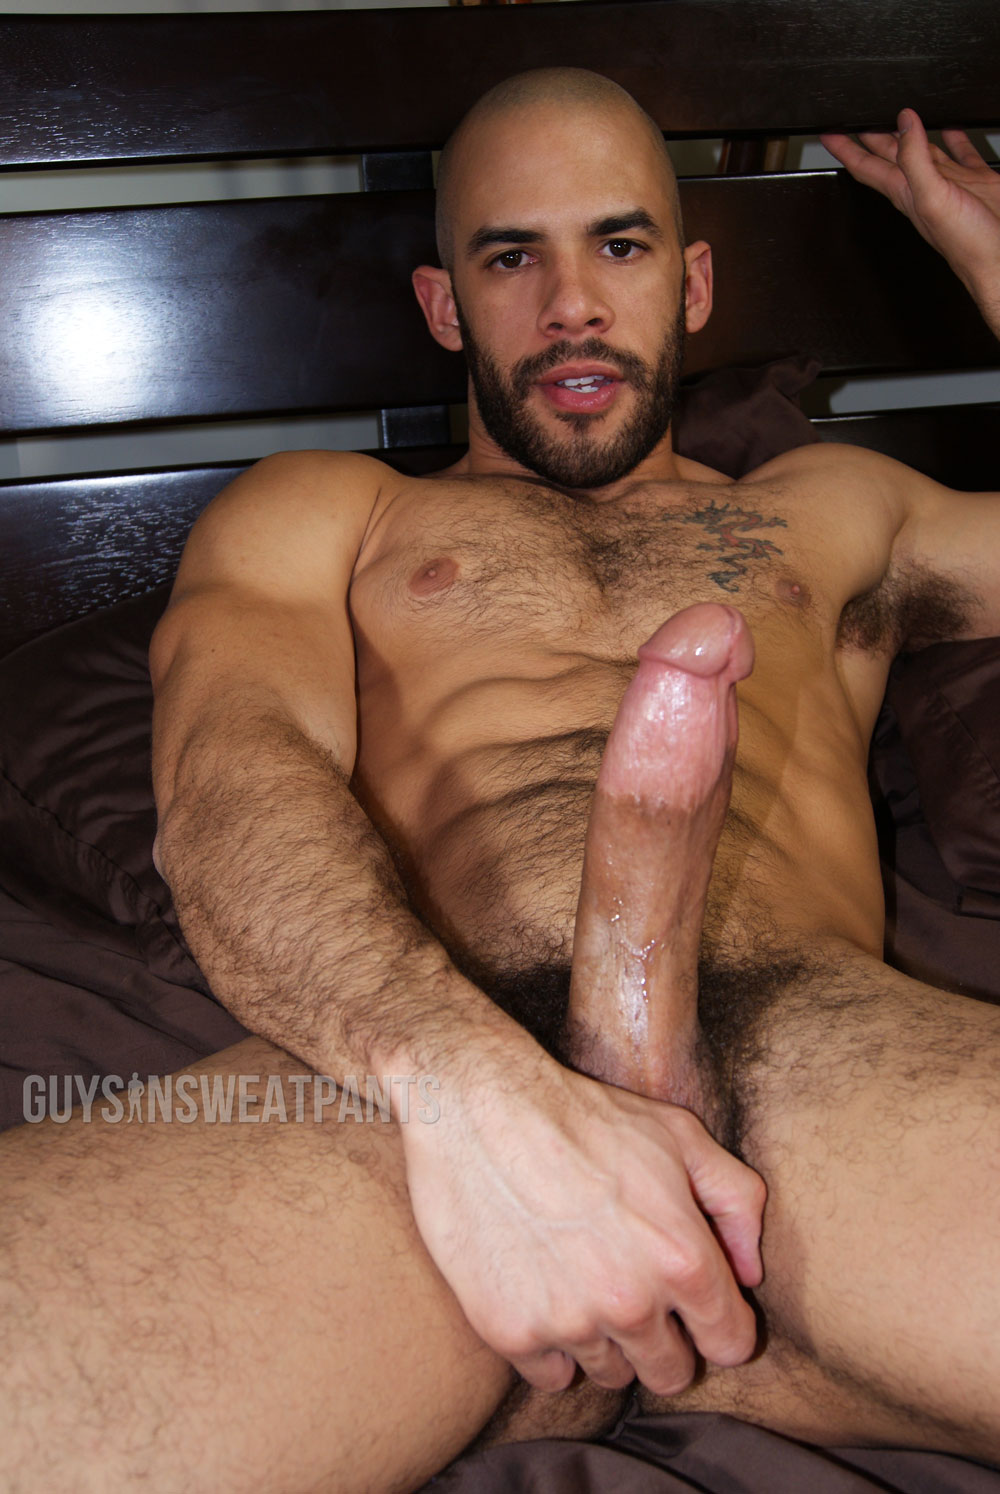 Austin Wilde Anthony Romero flip fuck gay hot daddy dude porn Guys In Sweatpants